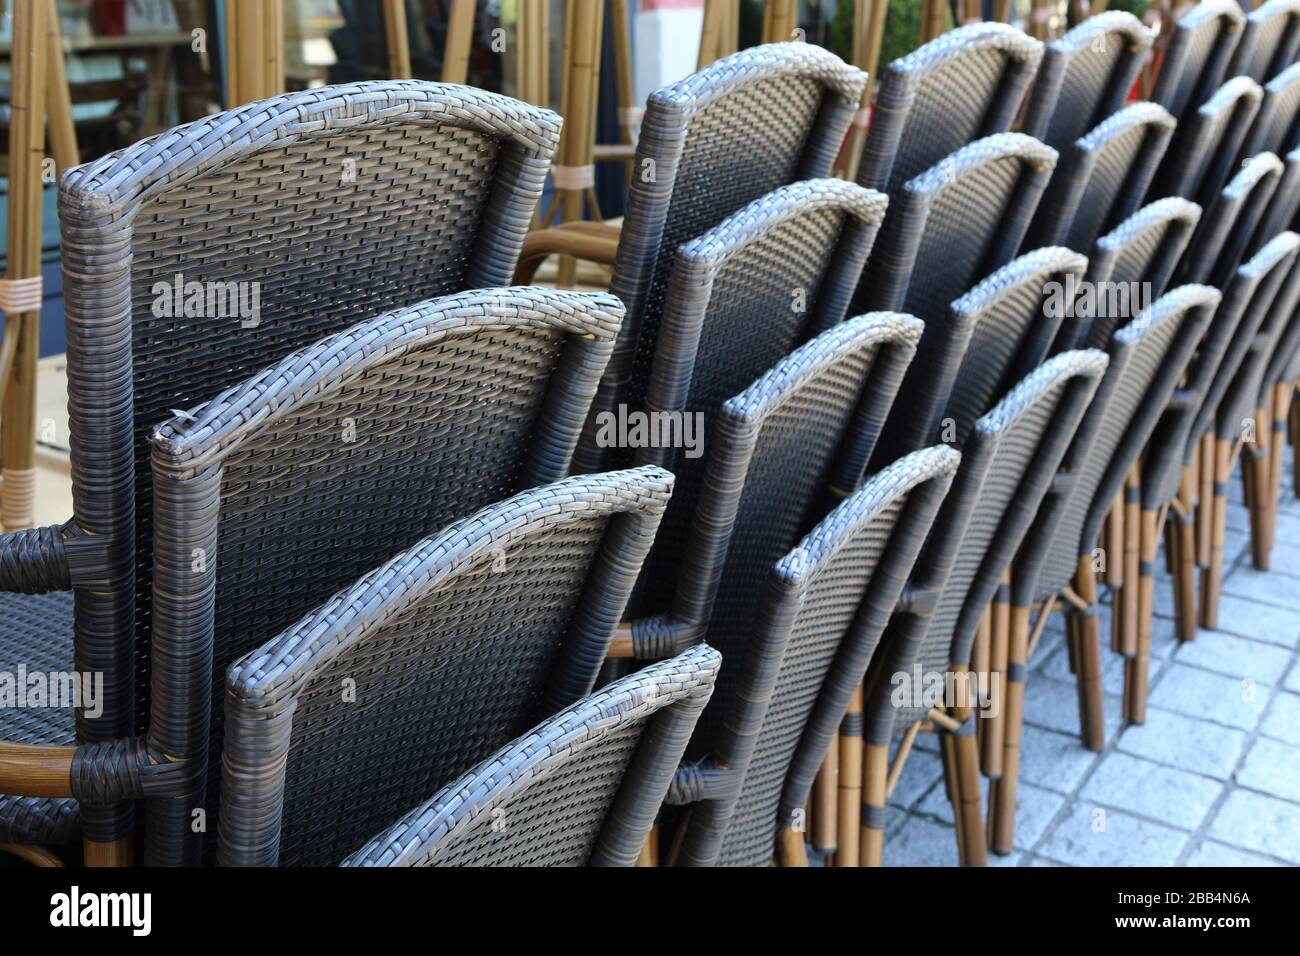 Chaises High Resolution Stock Photography And Images Alamy